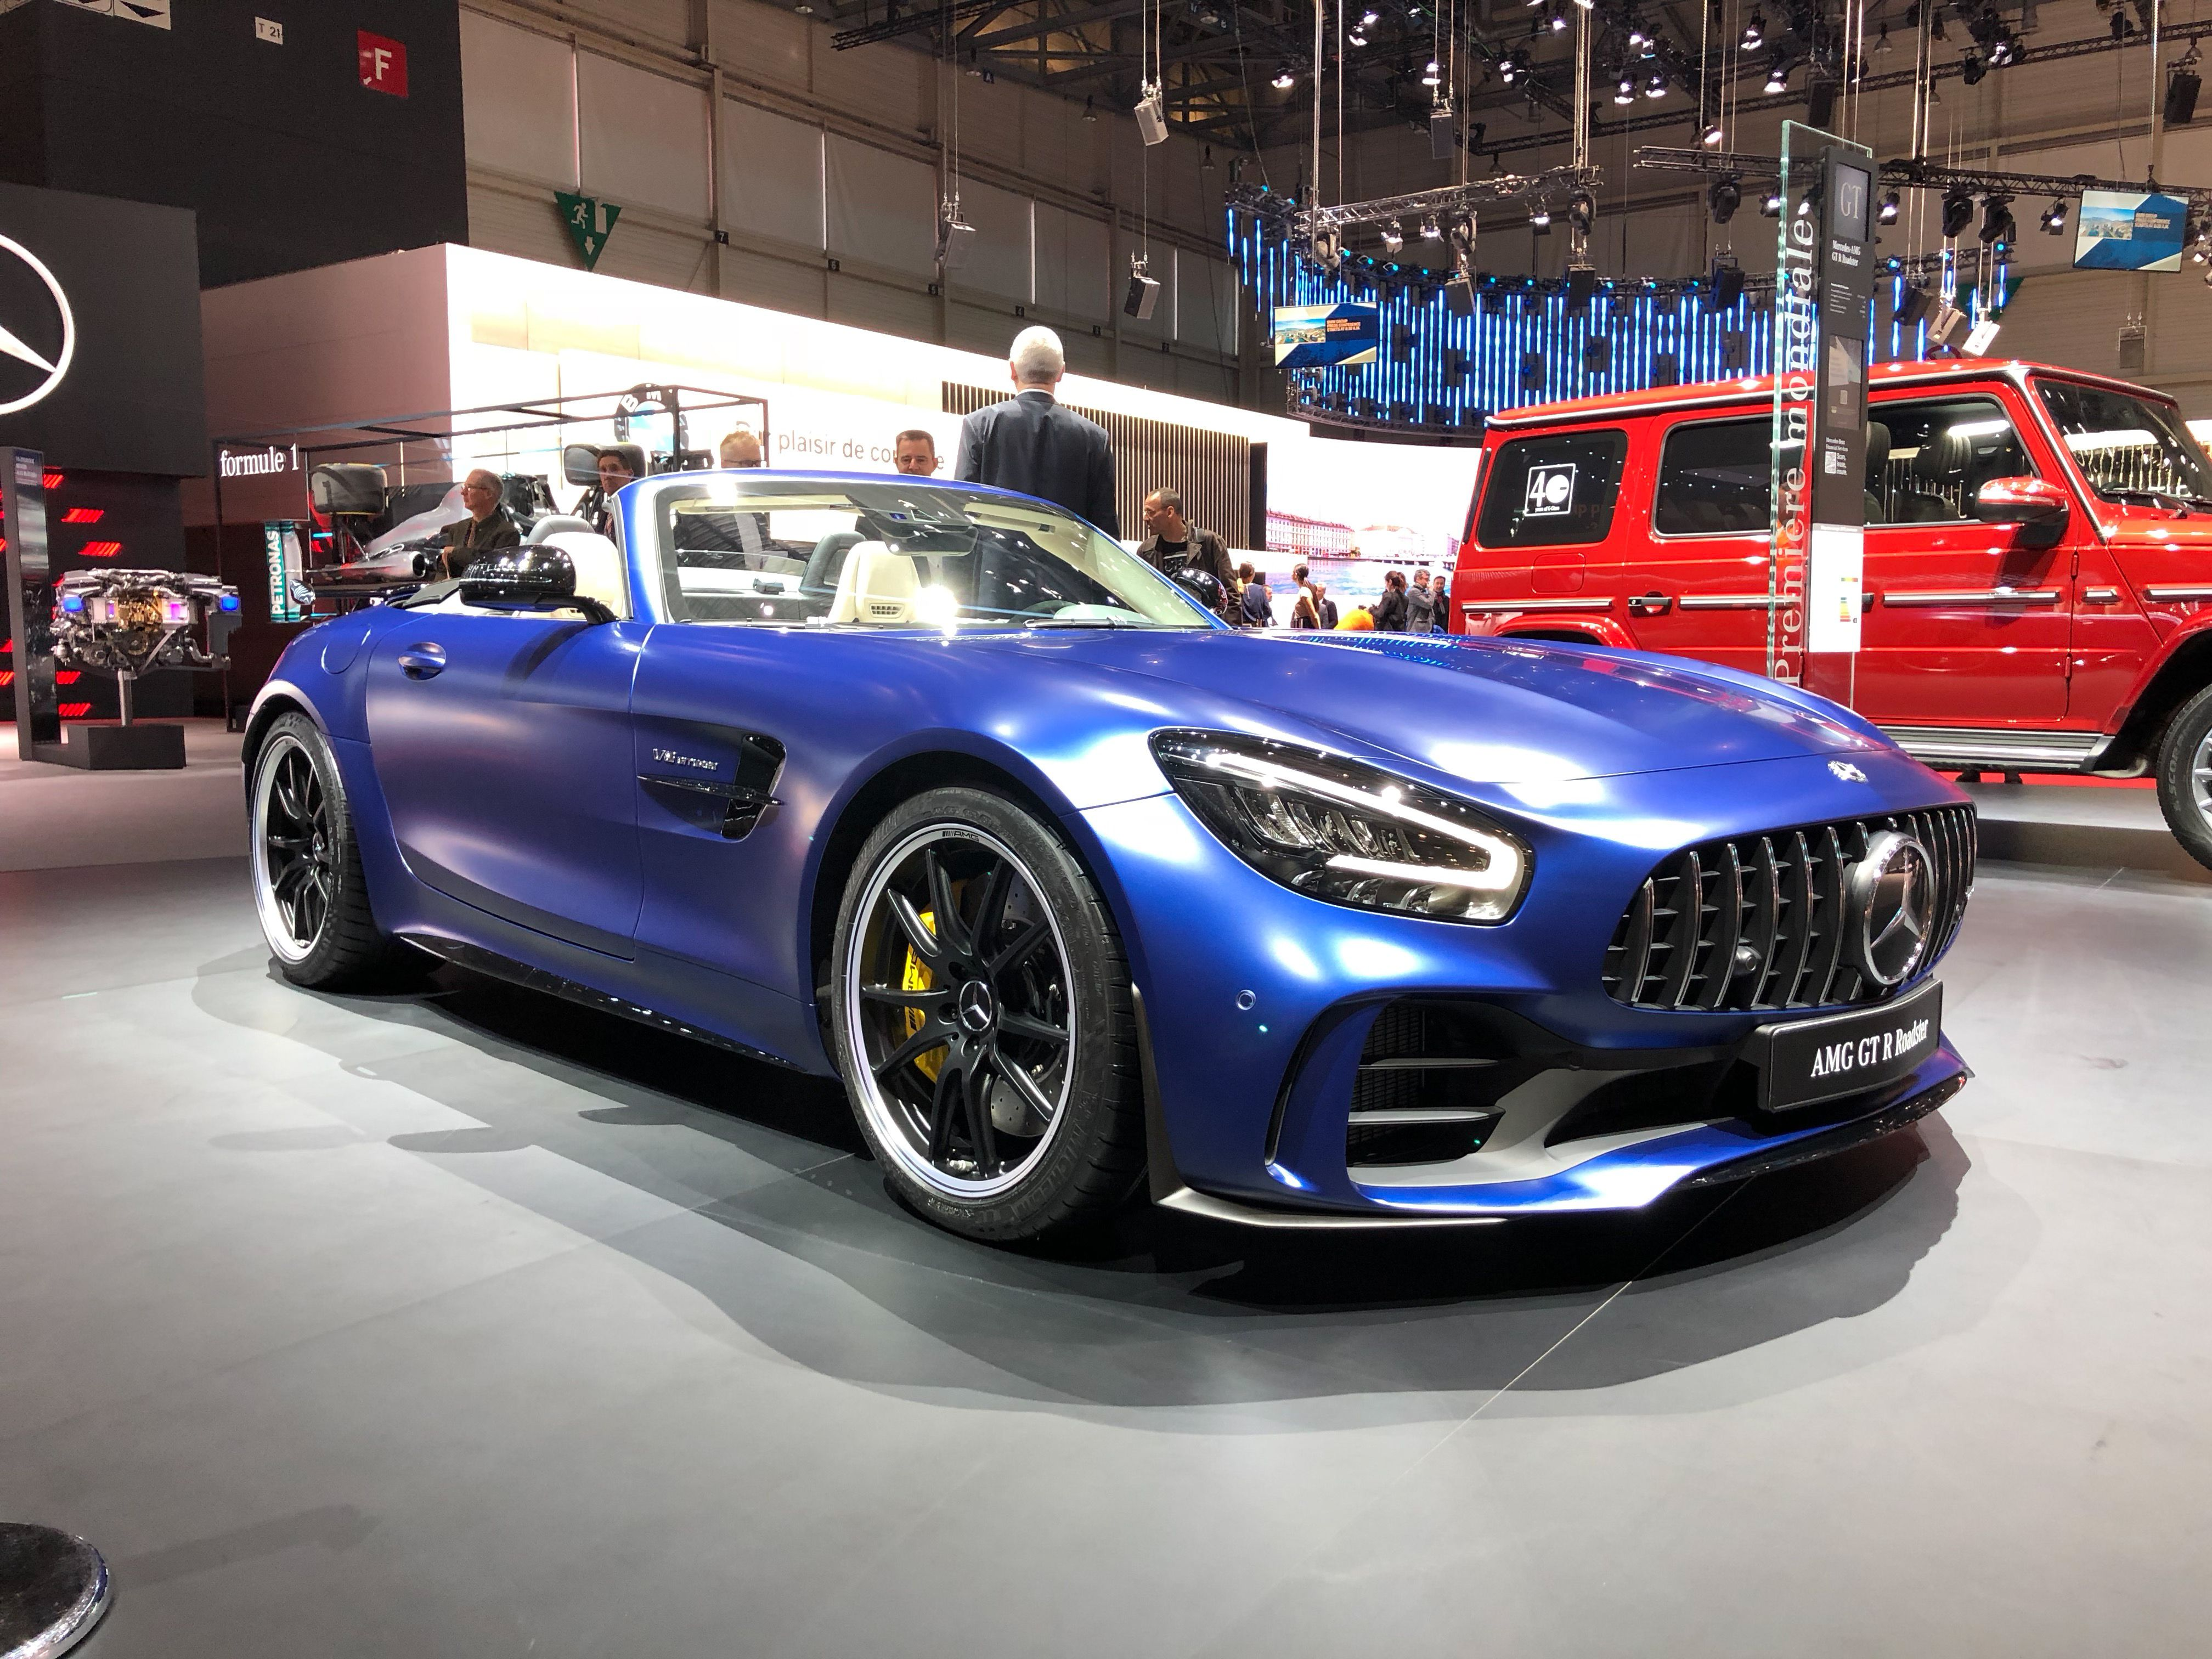 2020 Mercedes Amg Gt R Roadster Costs 27 000 More Than The Coupe